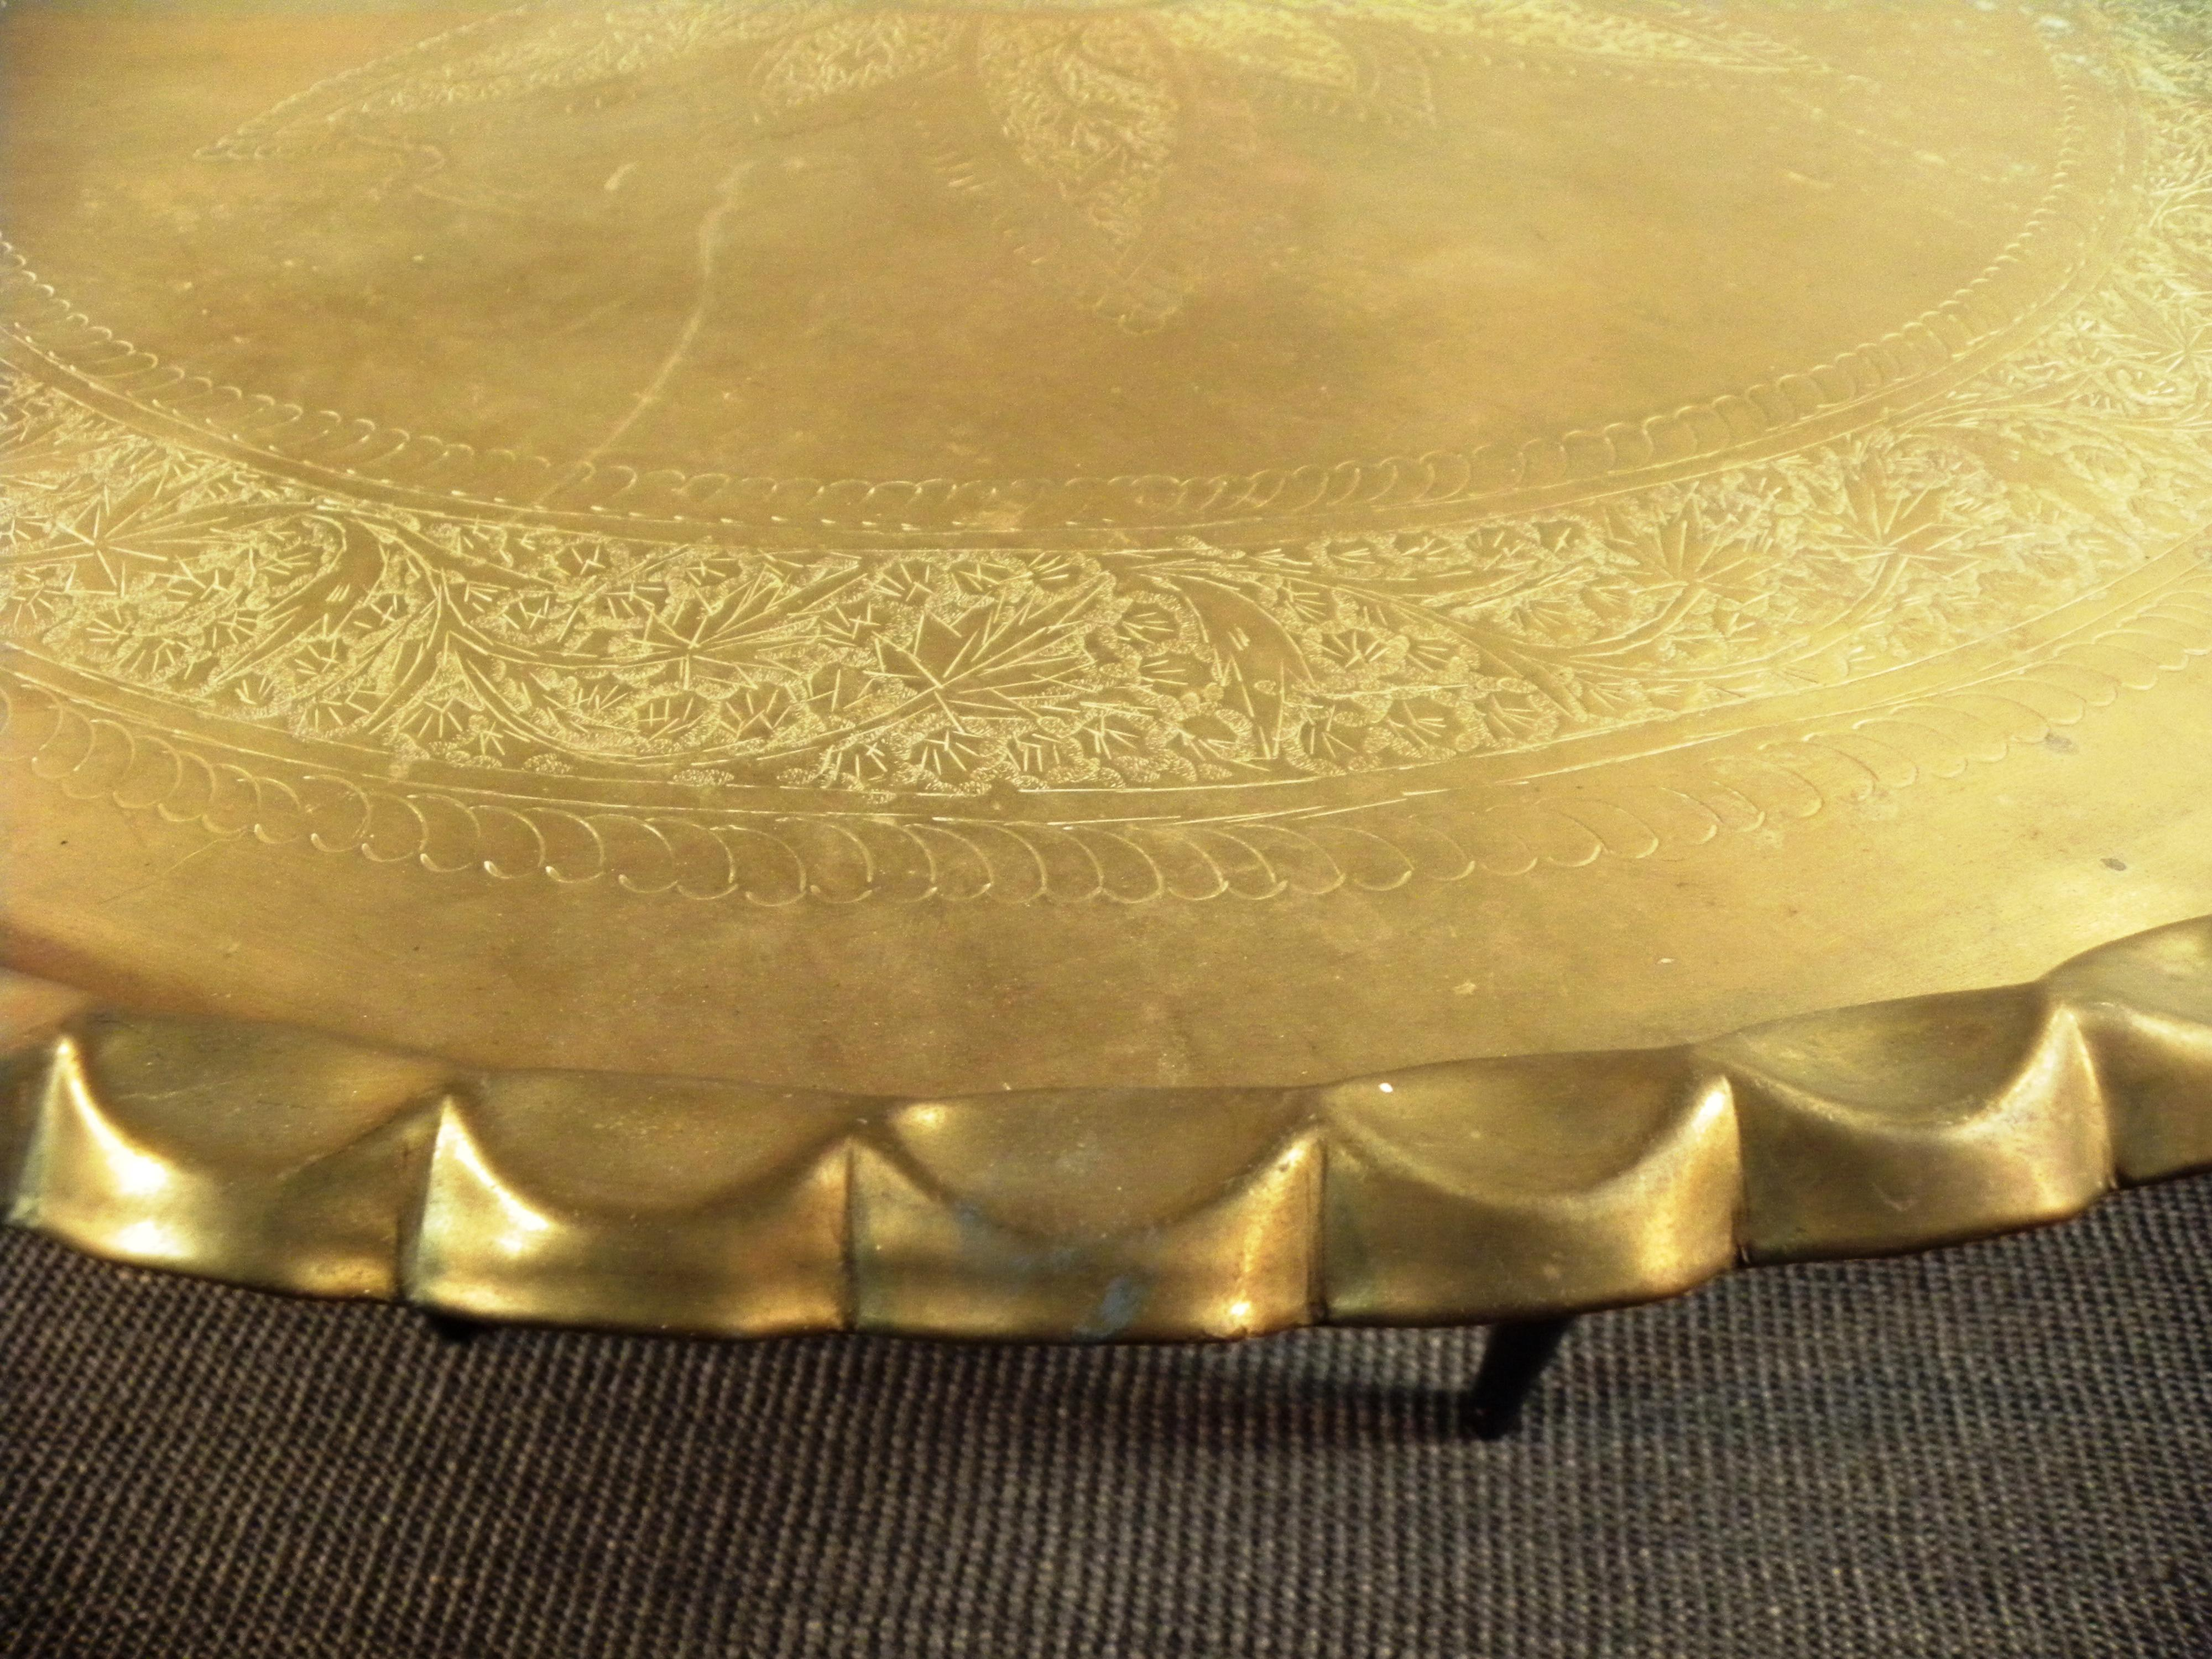 Charmant Mid Century Brass Moroccan Folding Coffee Table   Image 6 Of 8